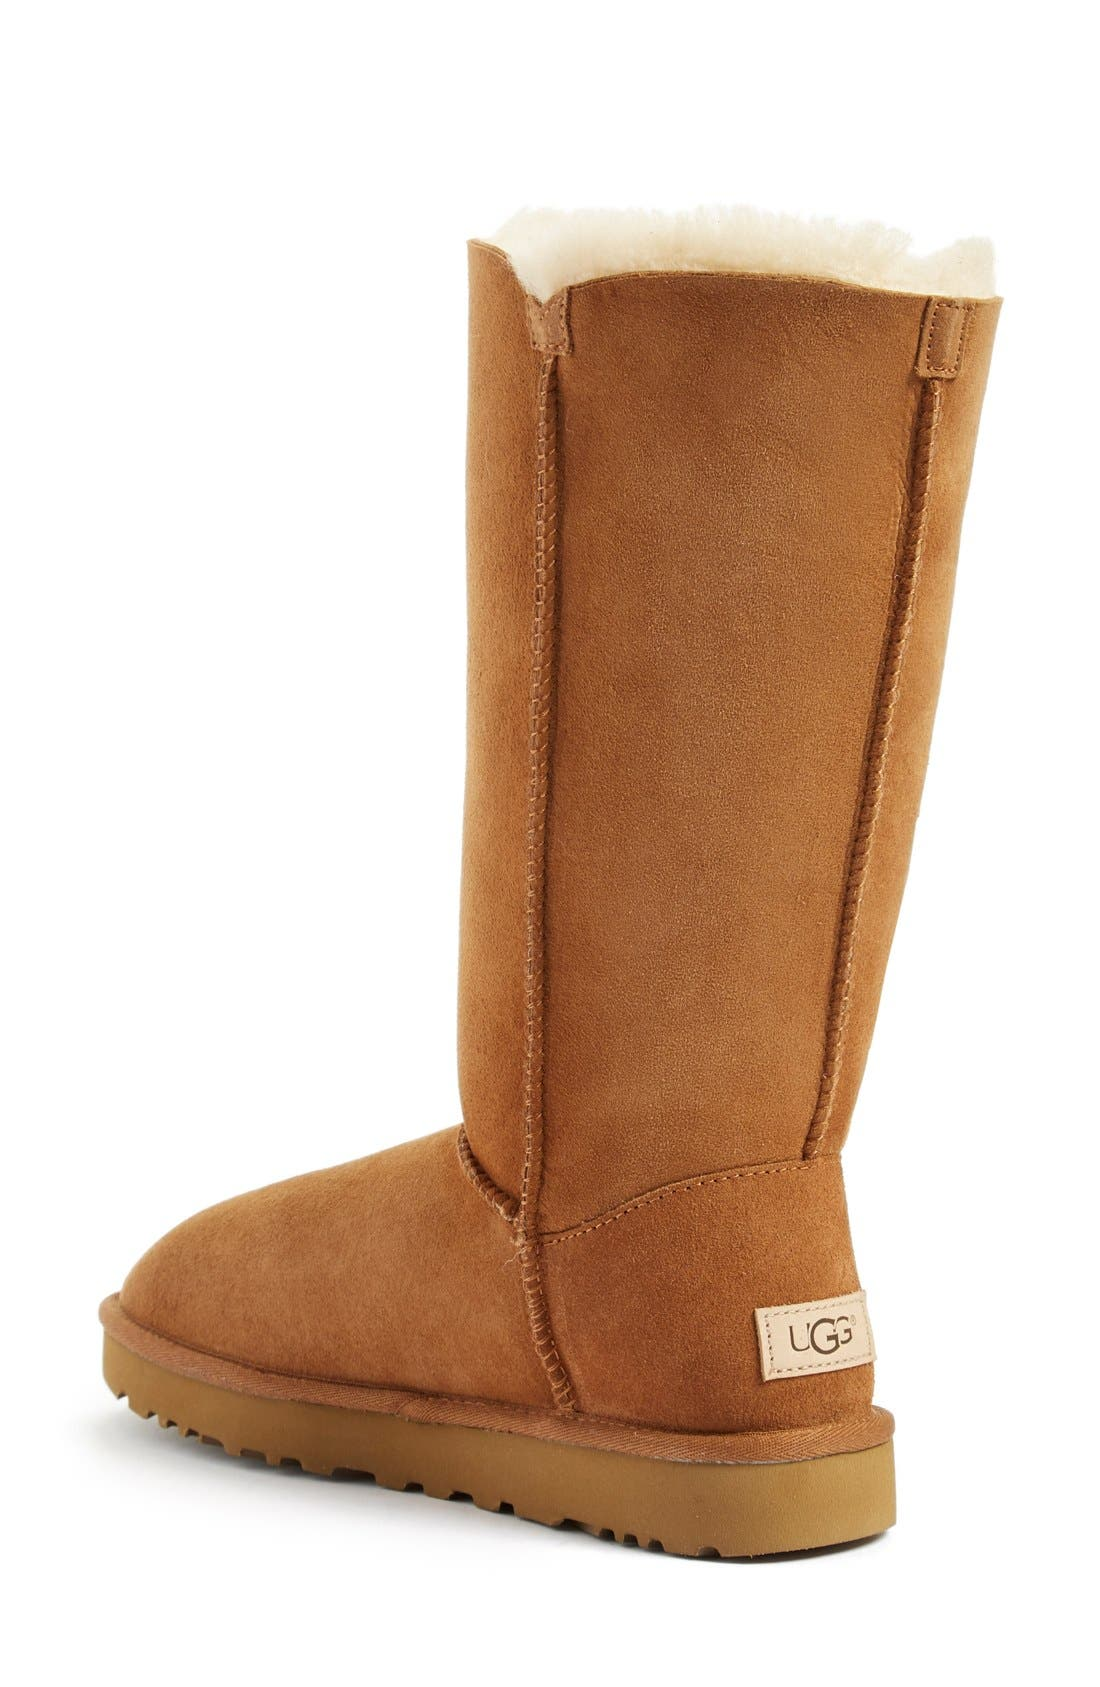 Bailey Button Triplet II Genuine Shearling Boot,                             Alternate thumbnail 2, color,                             CHESTNUT SUEDE